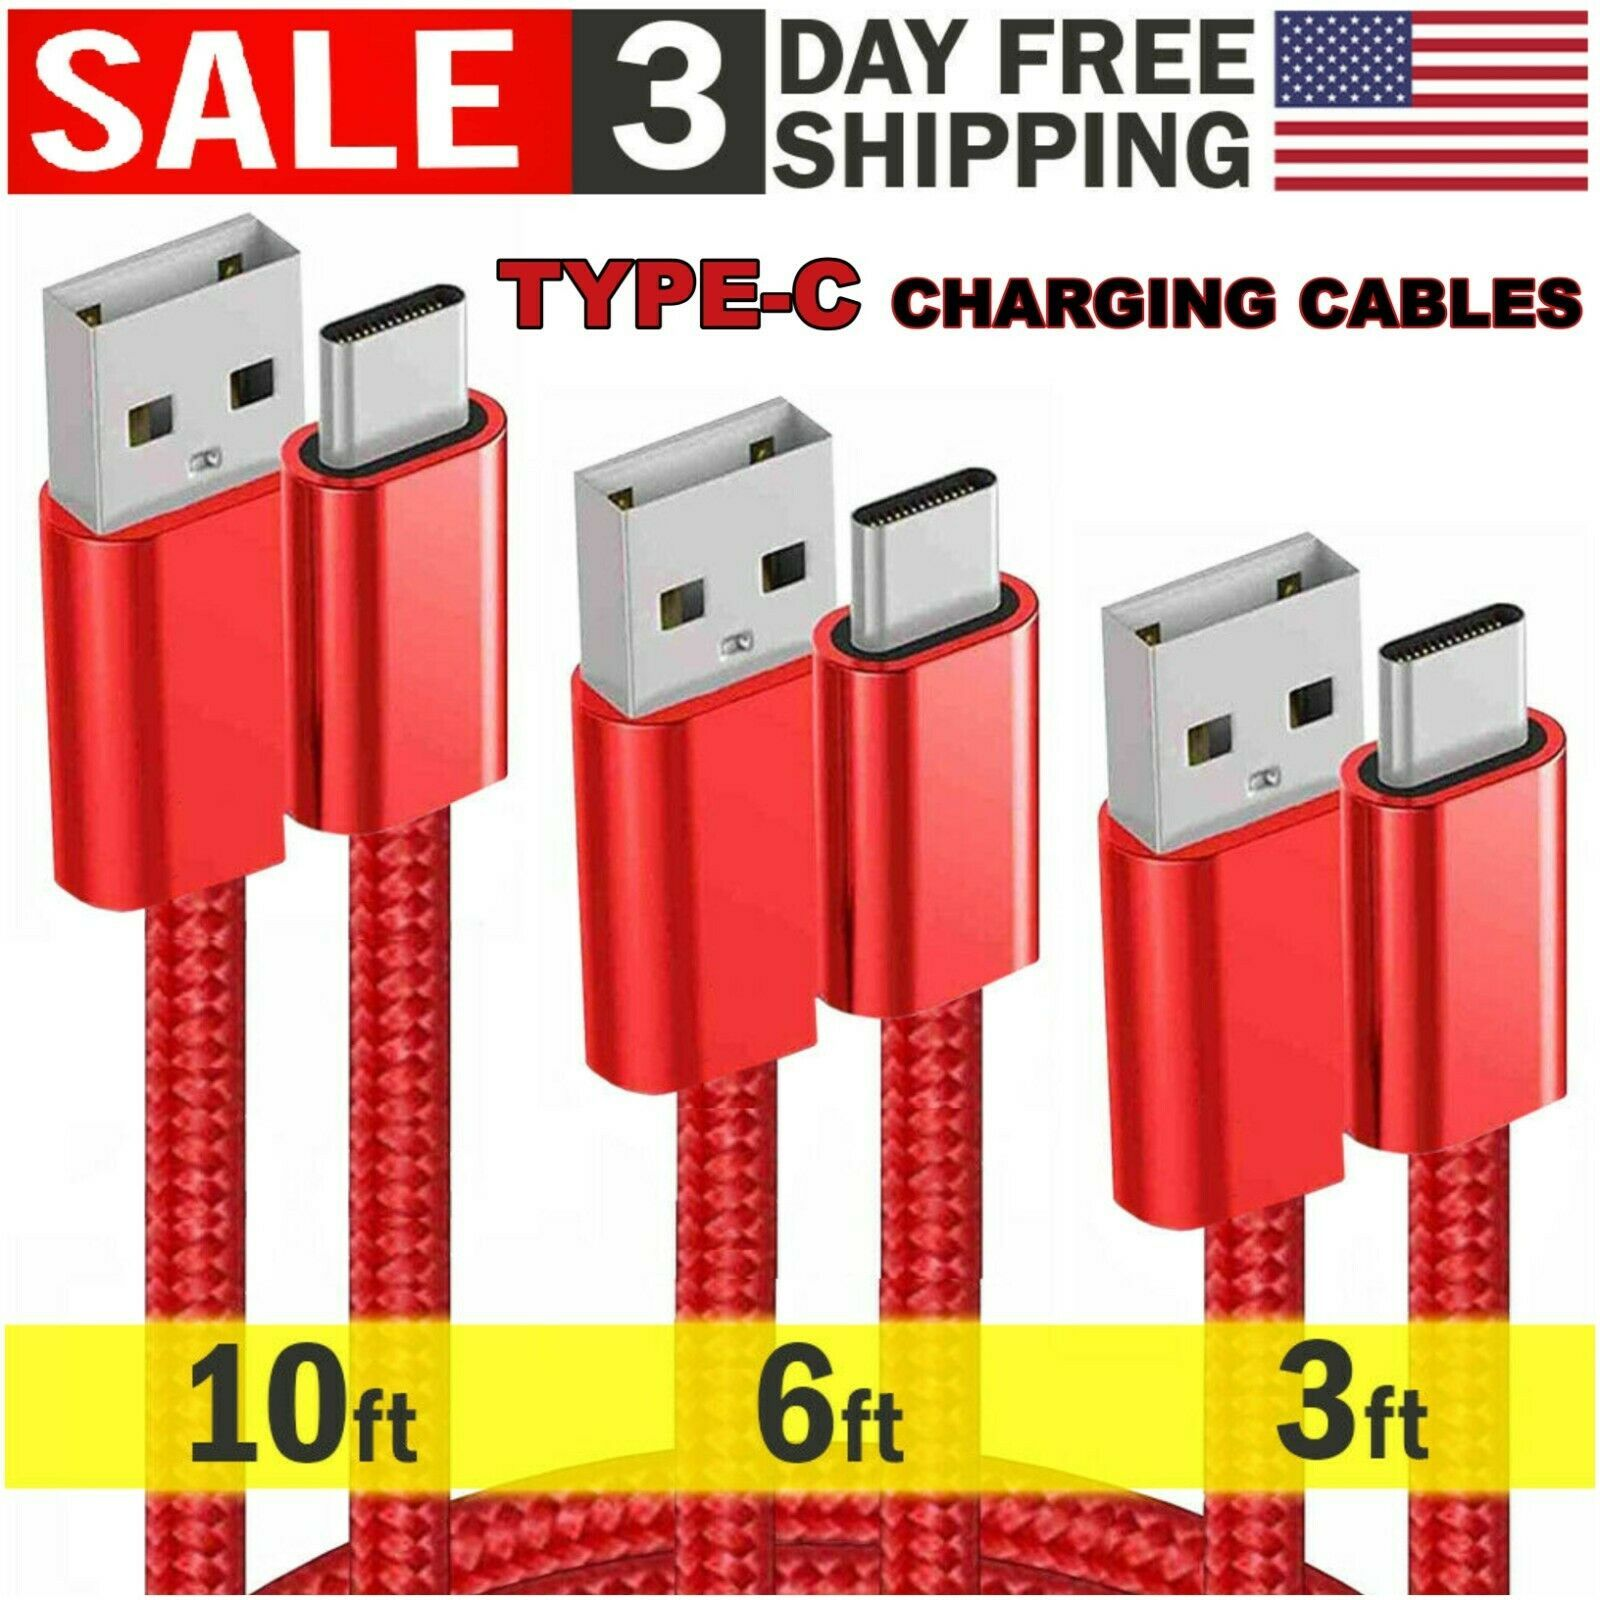 3 Pack Type-C USB Cable Cord Fast Charge 10ft 6ft 3ft Data Transfer Sync Android - $10.39